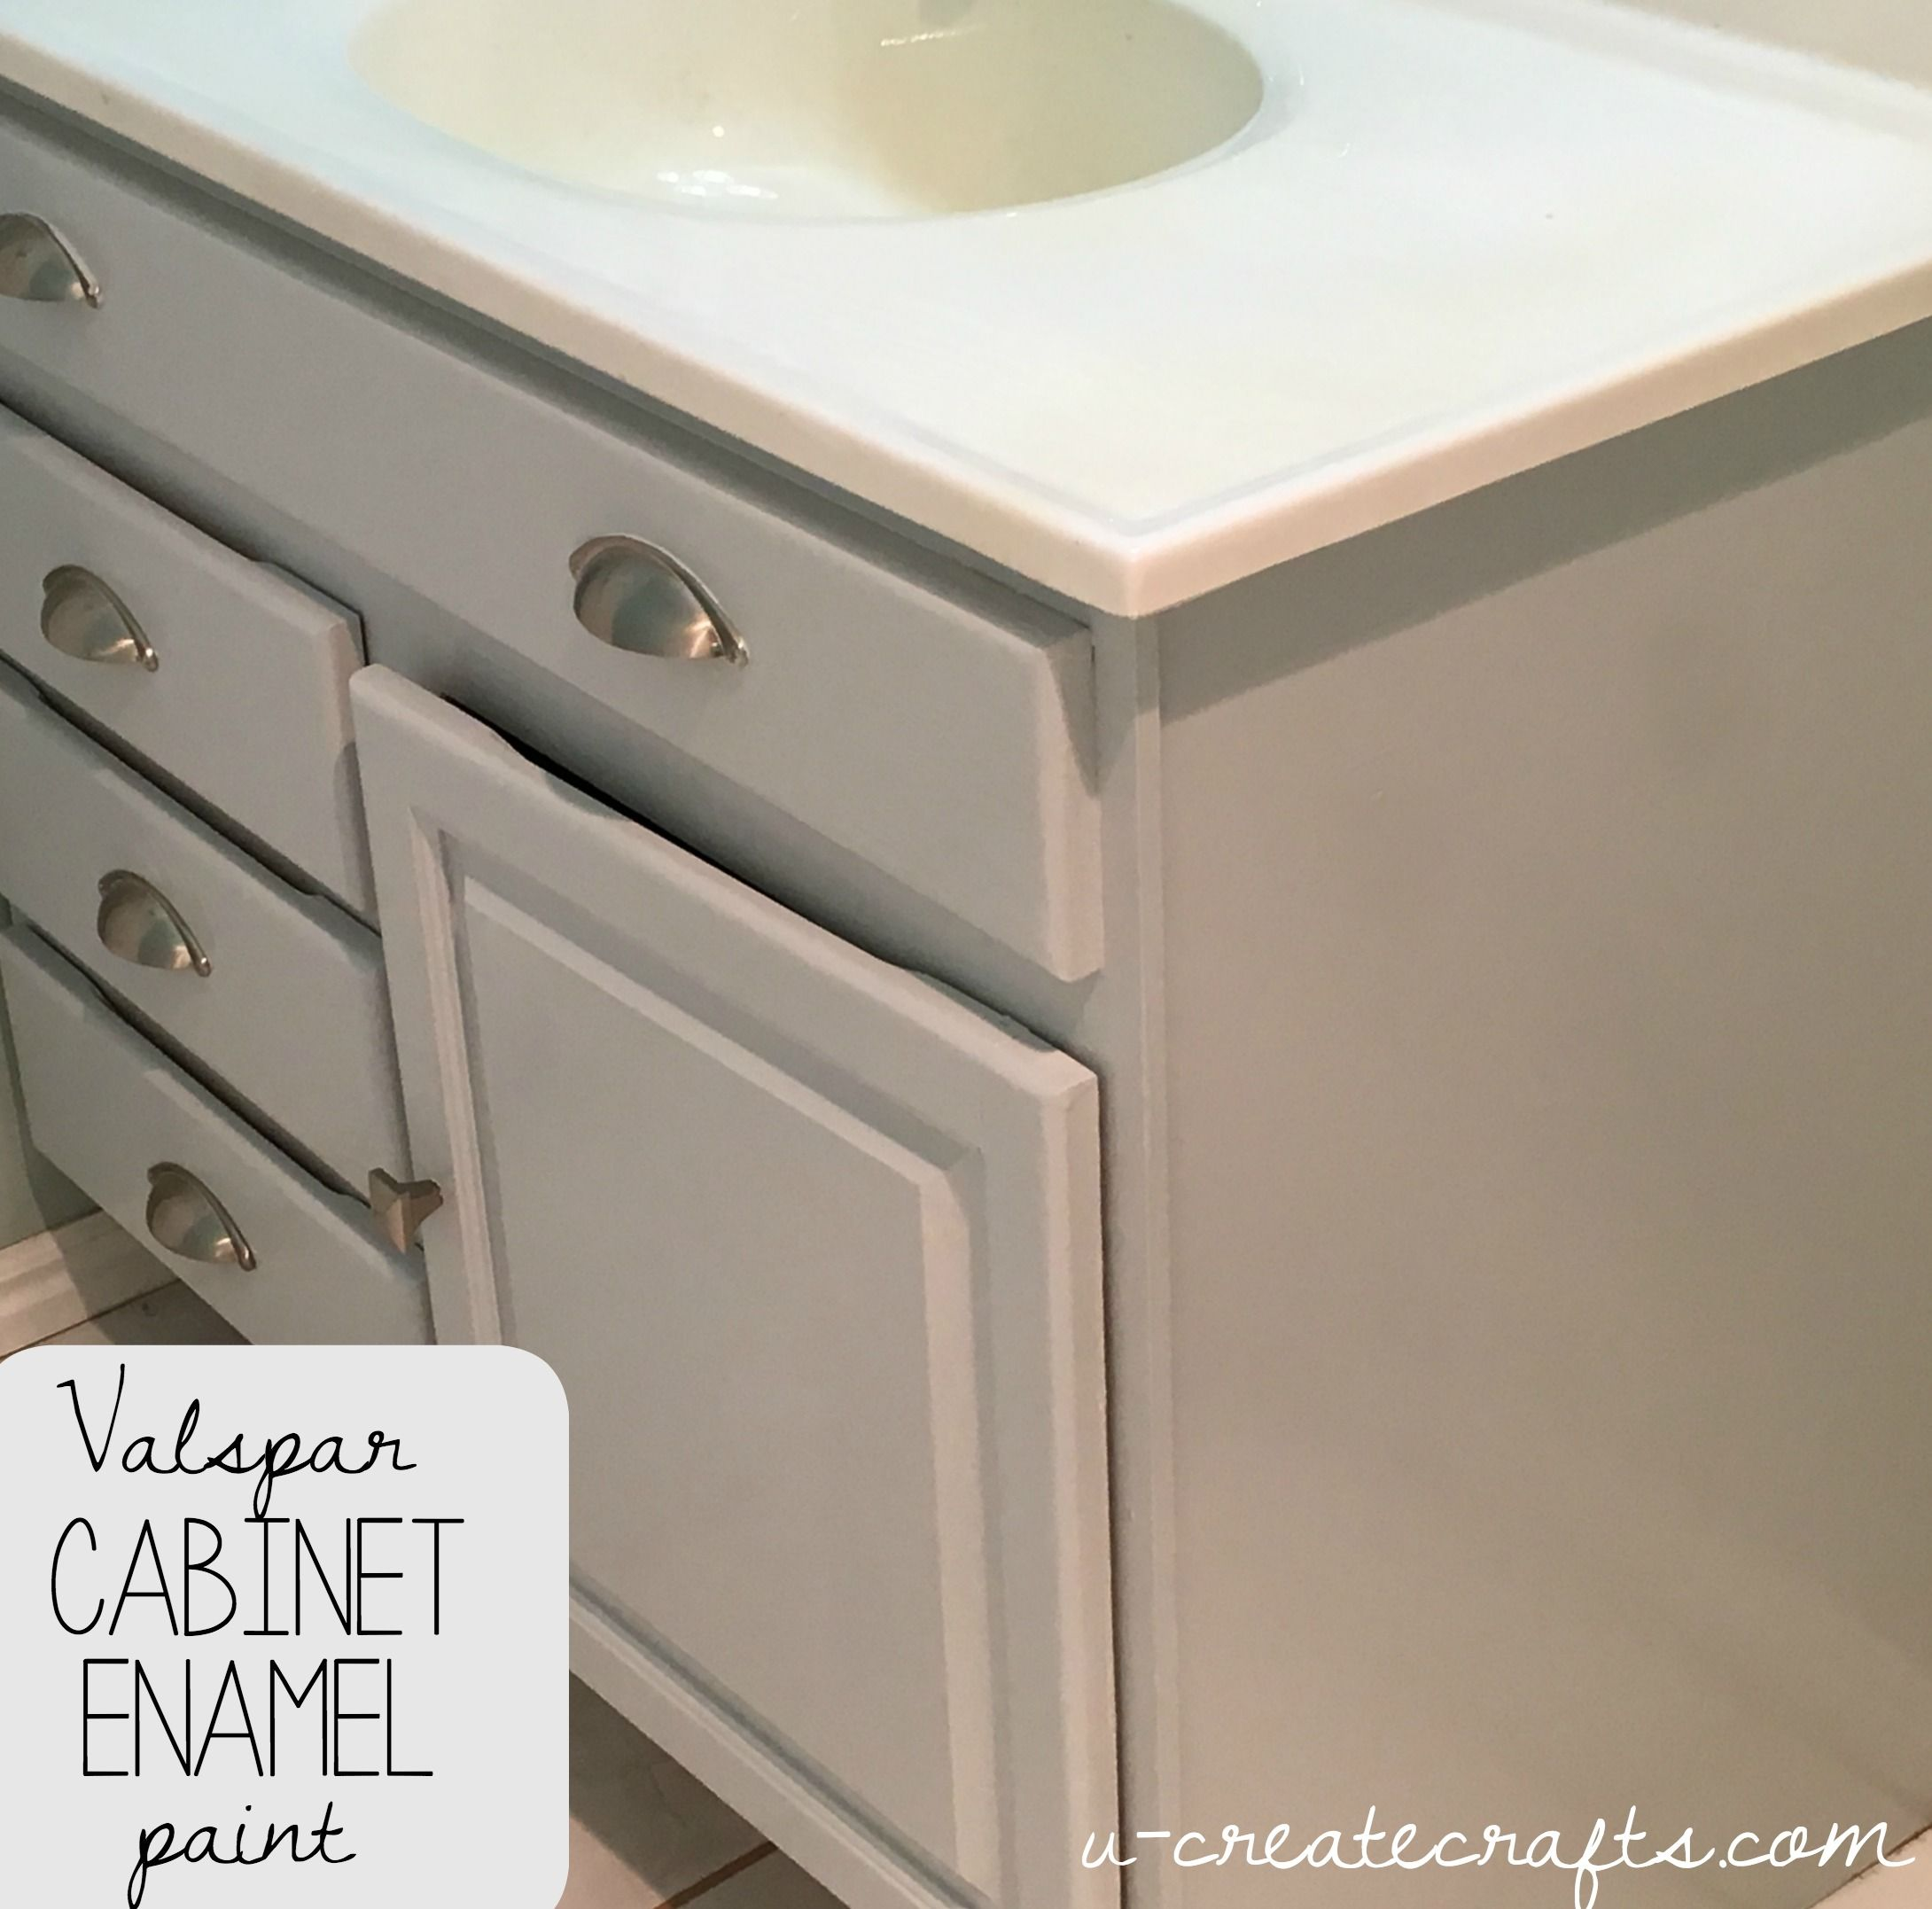 Valspar Cabinet Enamel Paint Bathroom Cabinet Makeover Painting